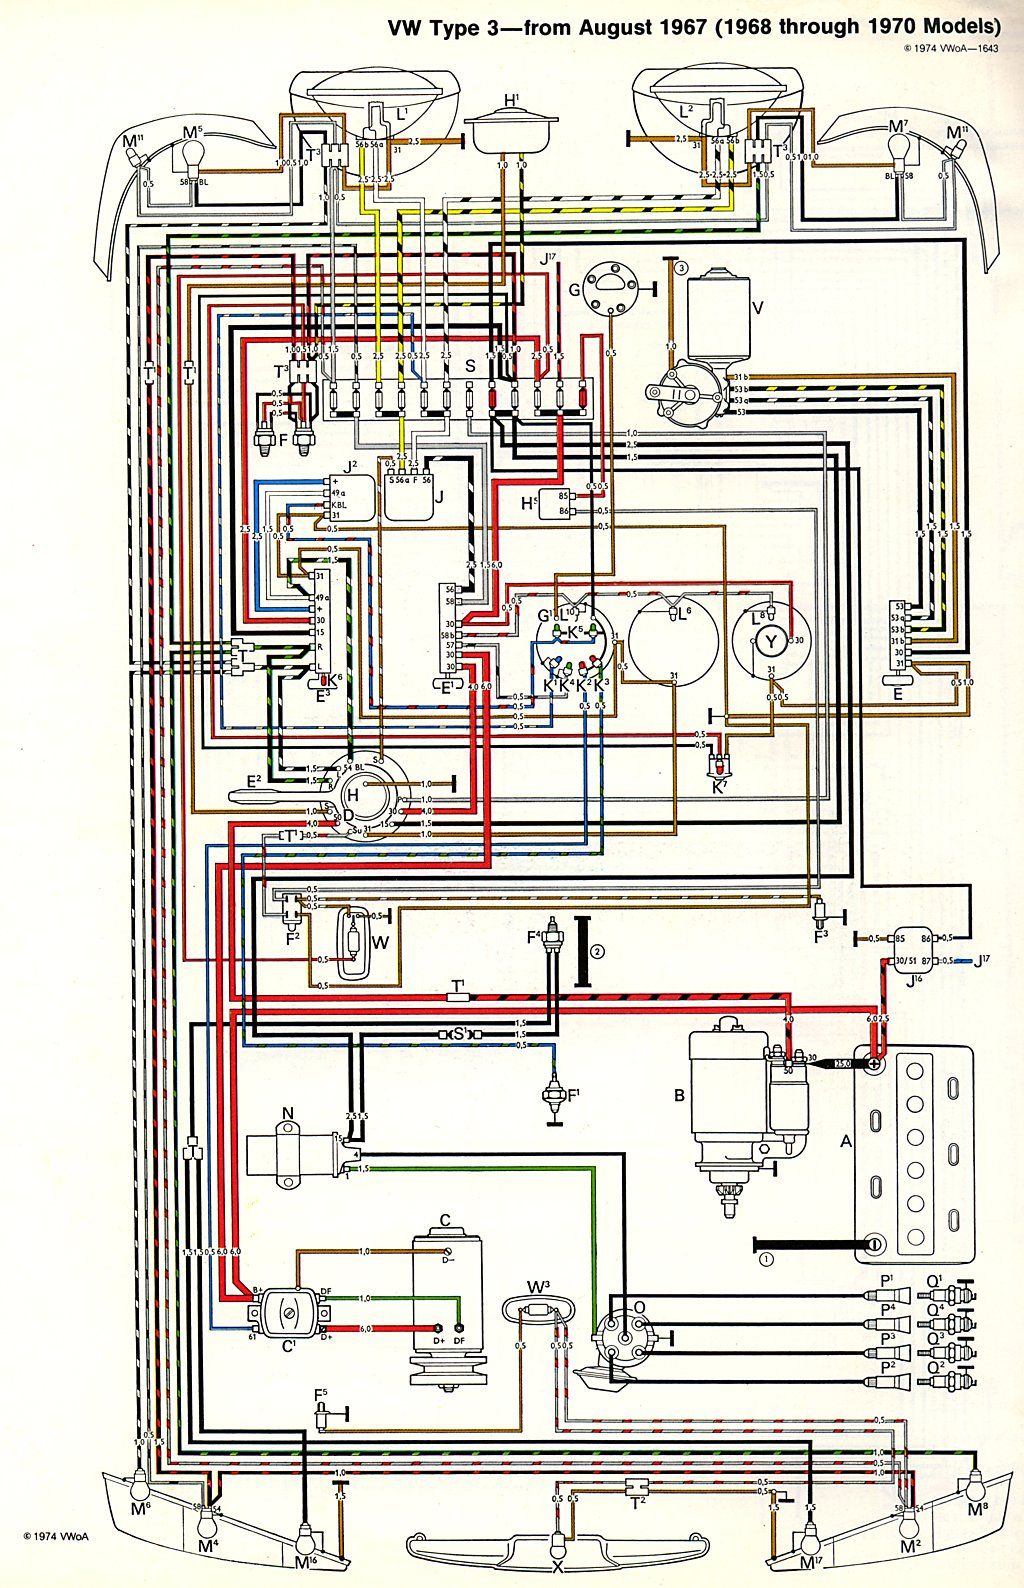 type3_6870 vw thing wiring diagram 1974 beetle heater diagram \u2022 wiring Wiring Harness Diagram at fashall.co